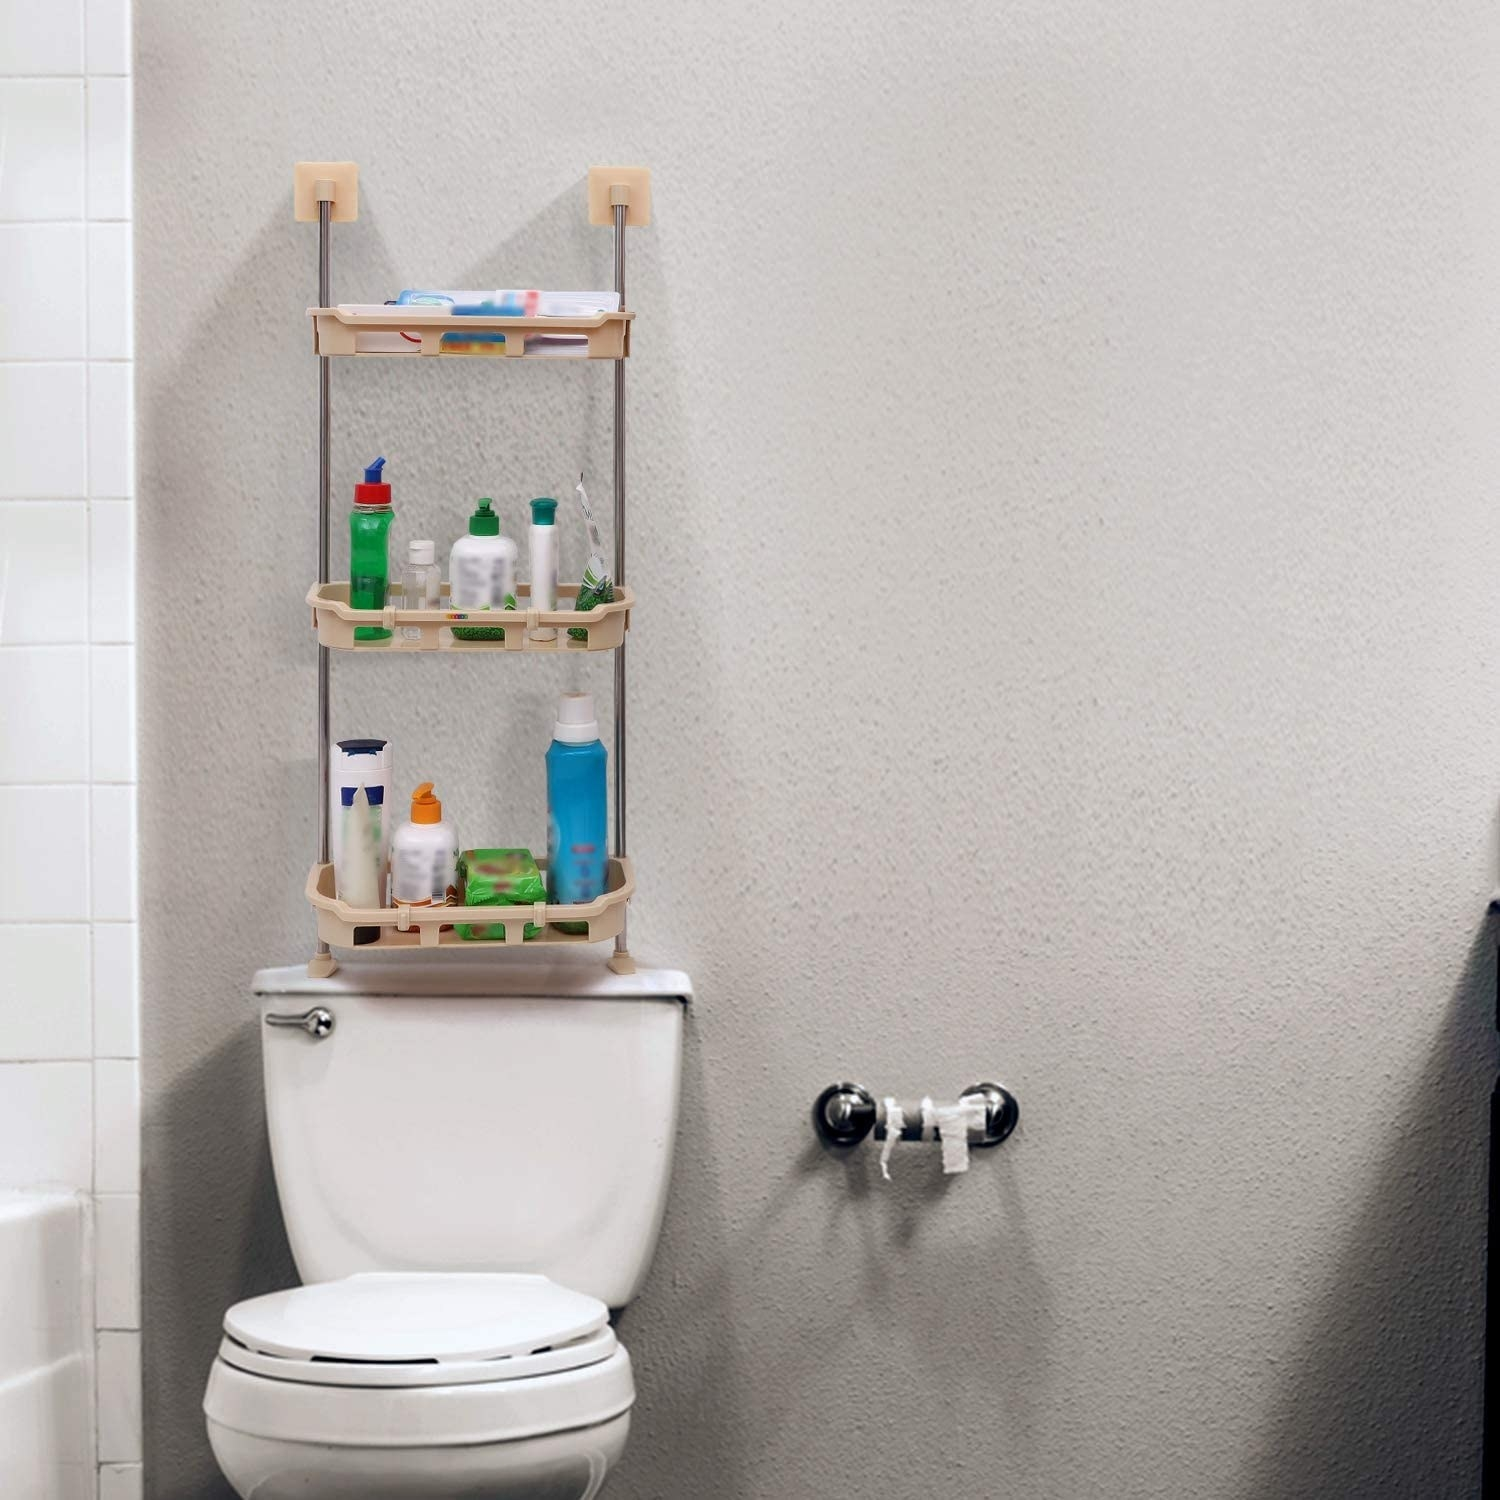 An over-the-toilet organiser with items in it